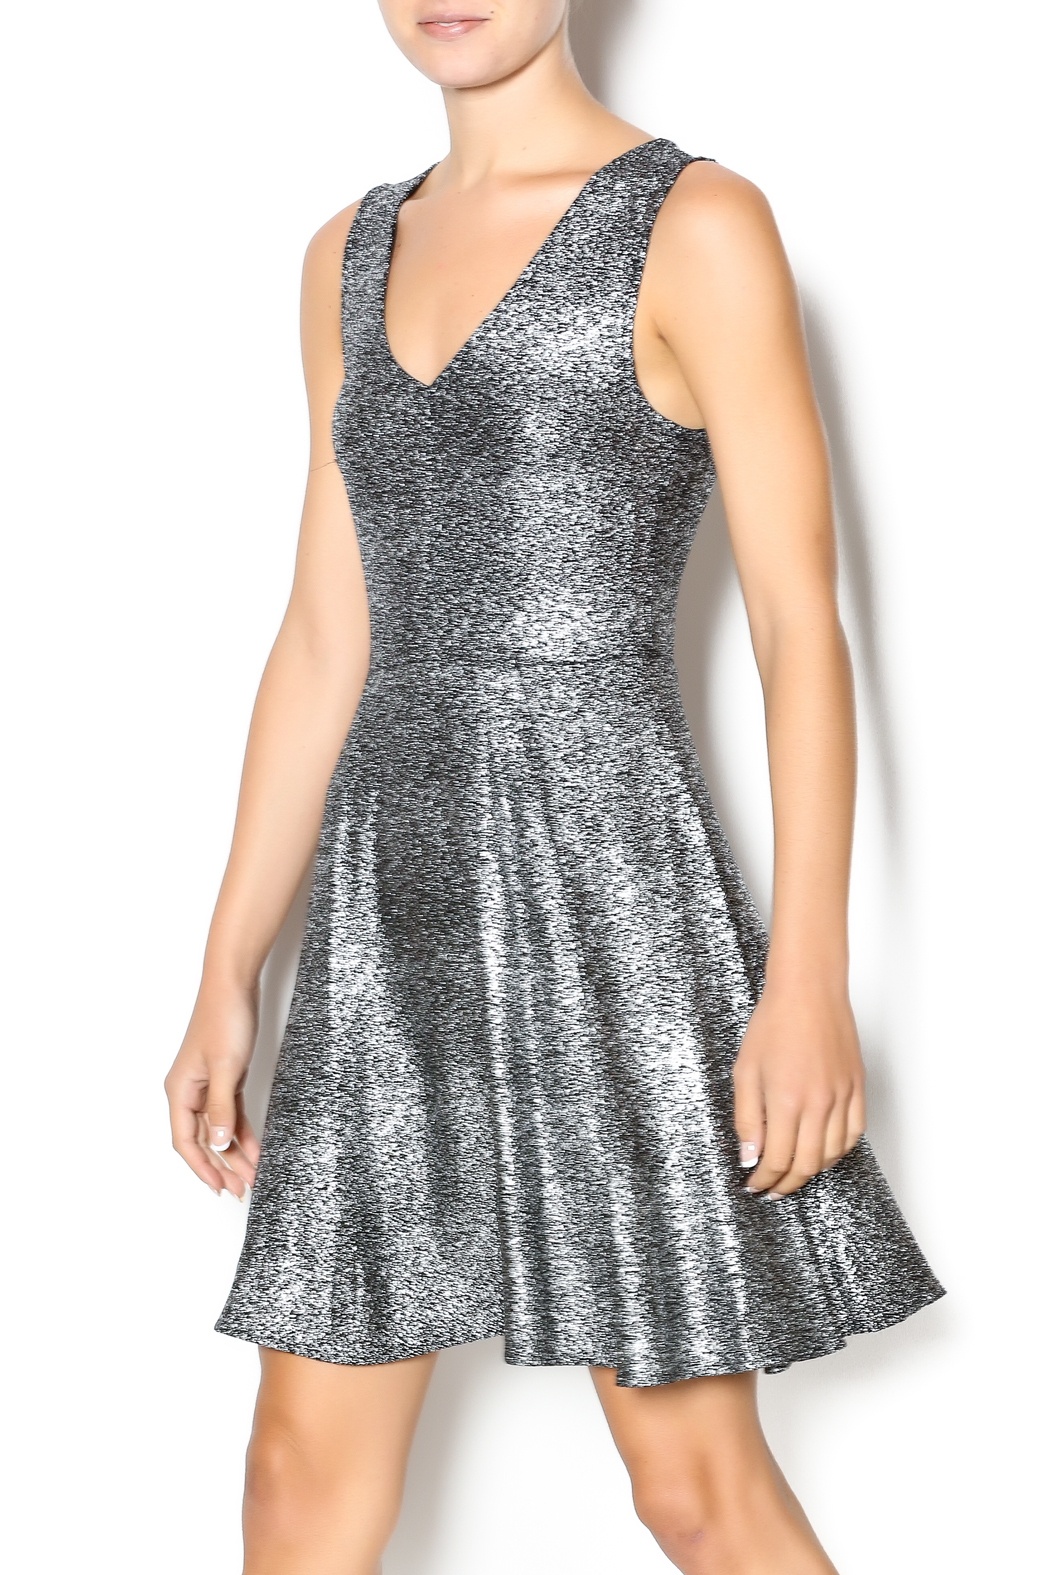 Everly Shimmer Flare Dress From South Dakota By Posh